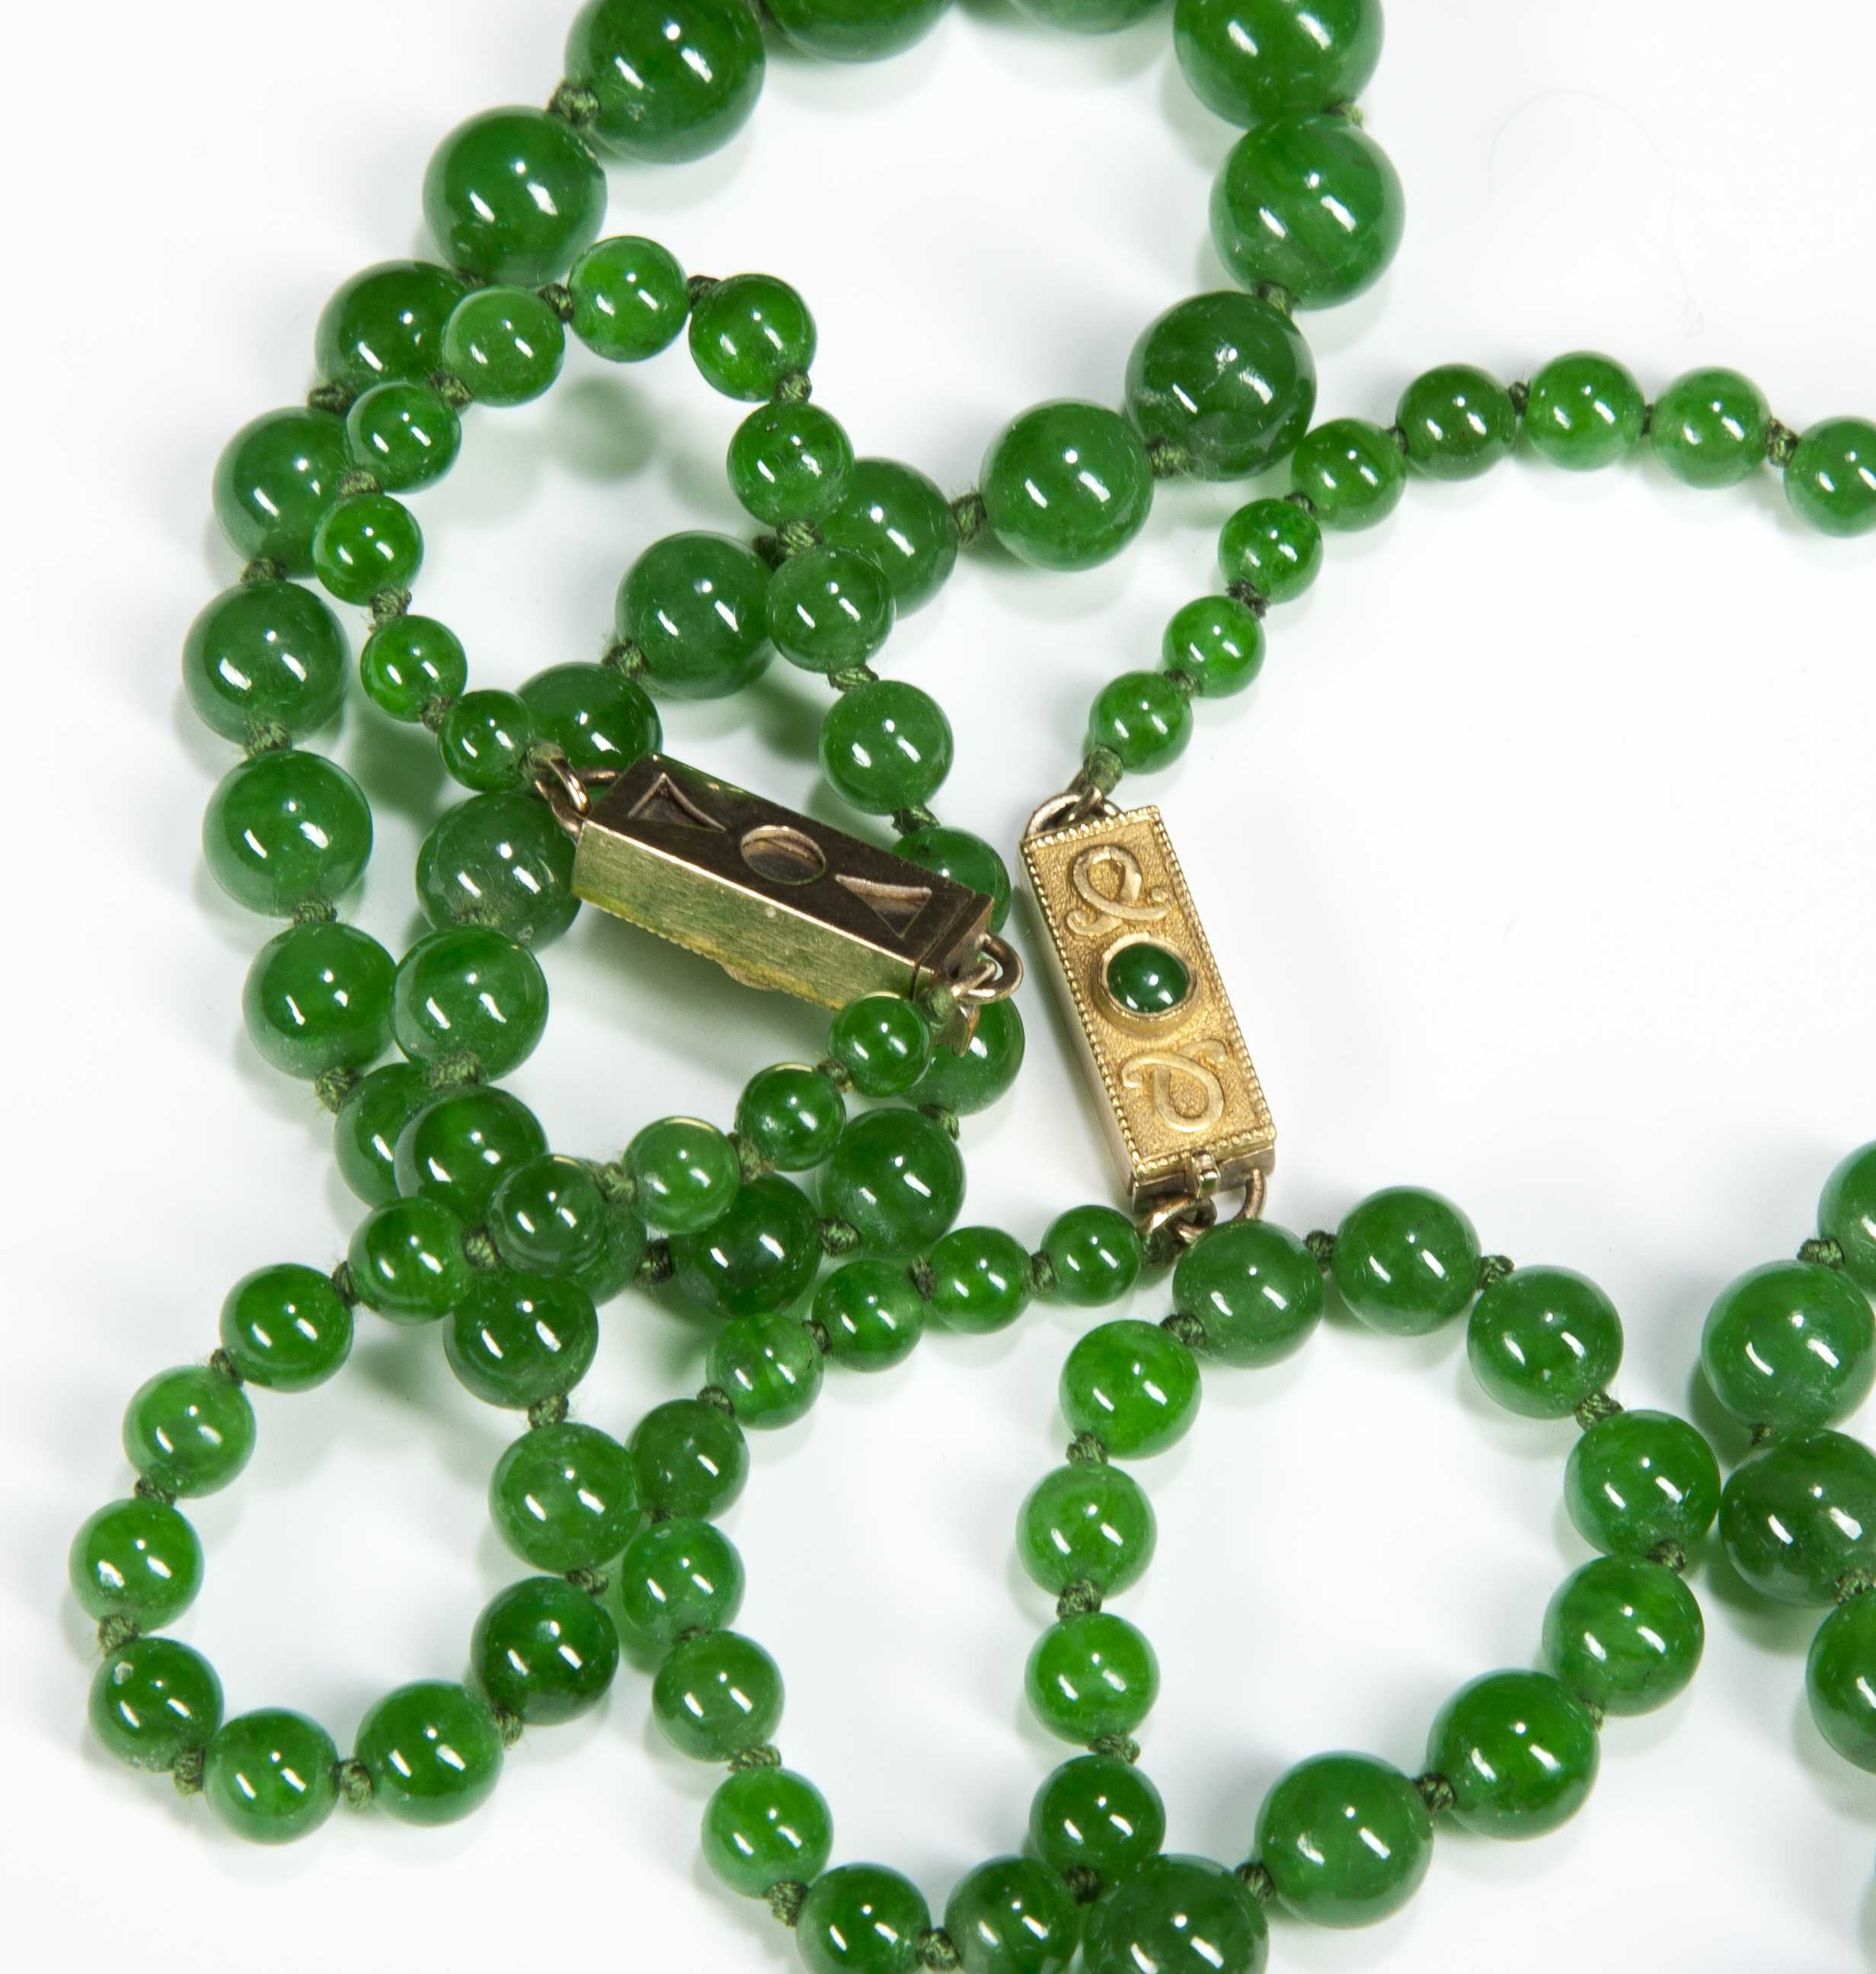 bead and mala necklaces necklace guru image with jade beads products collections womens skull tahneh